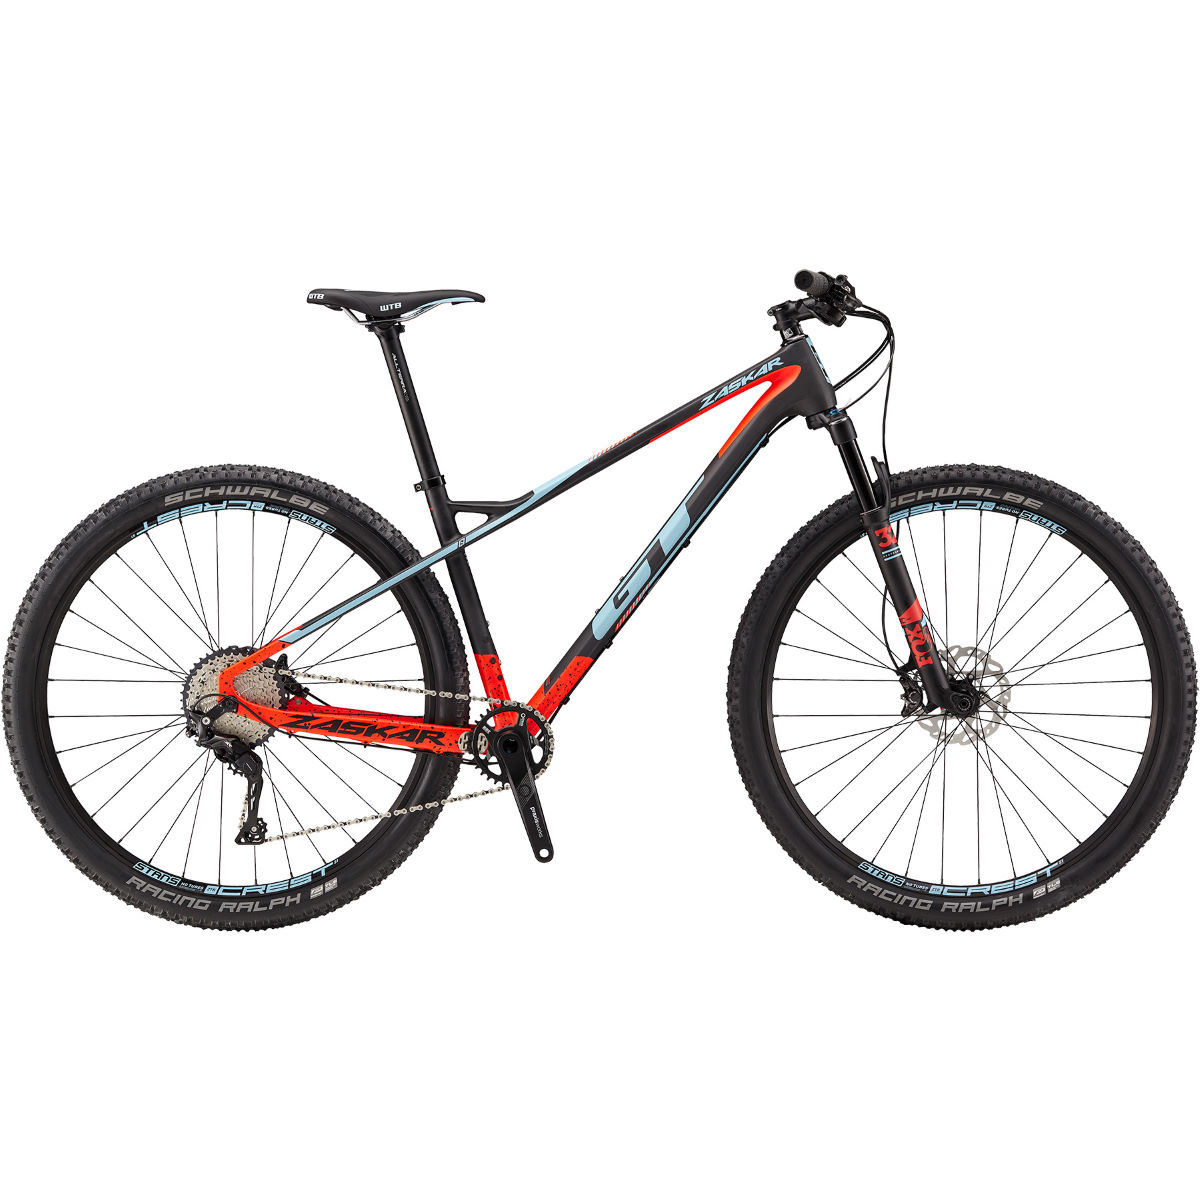 VTT semi-rigide GT Zaskar Carbon Expert - Medium Stock Bike Carbone